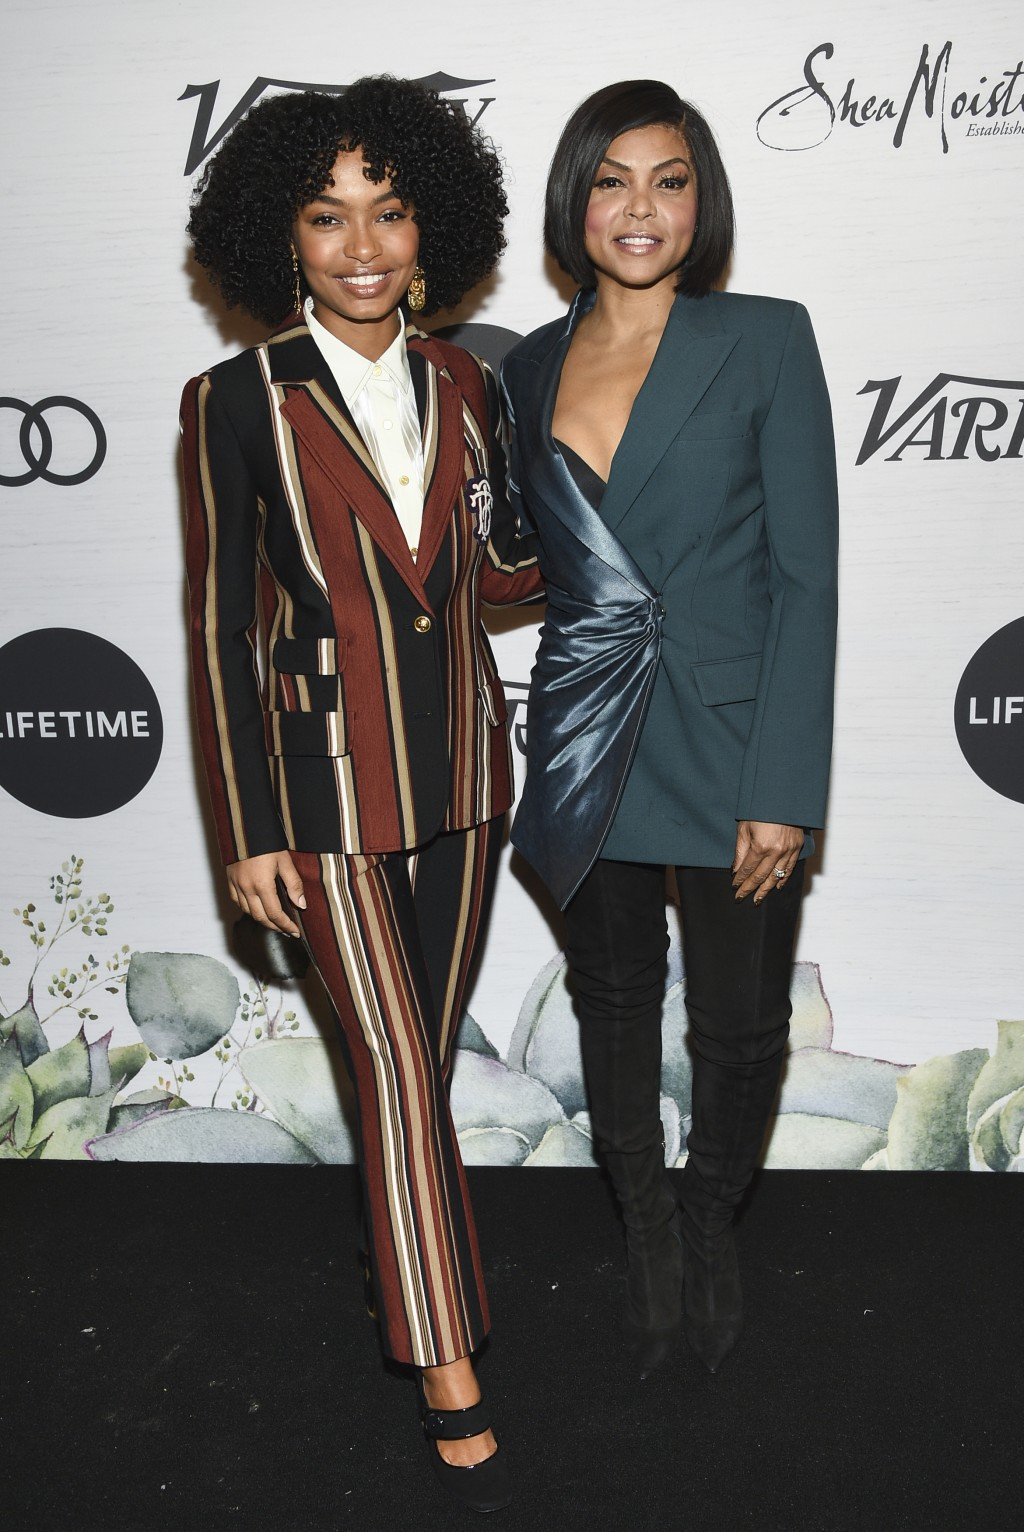 Honoree Taraji P. Henson, right, and actress Yara Shahidi attend Variety's Power of Women: New York presented by Lifetime at Cipriani 42nd Street on F